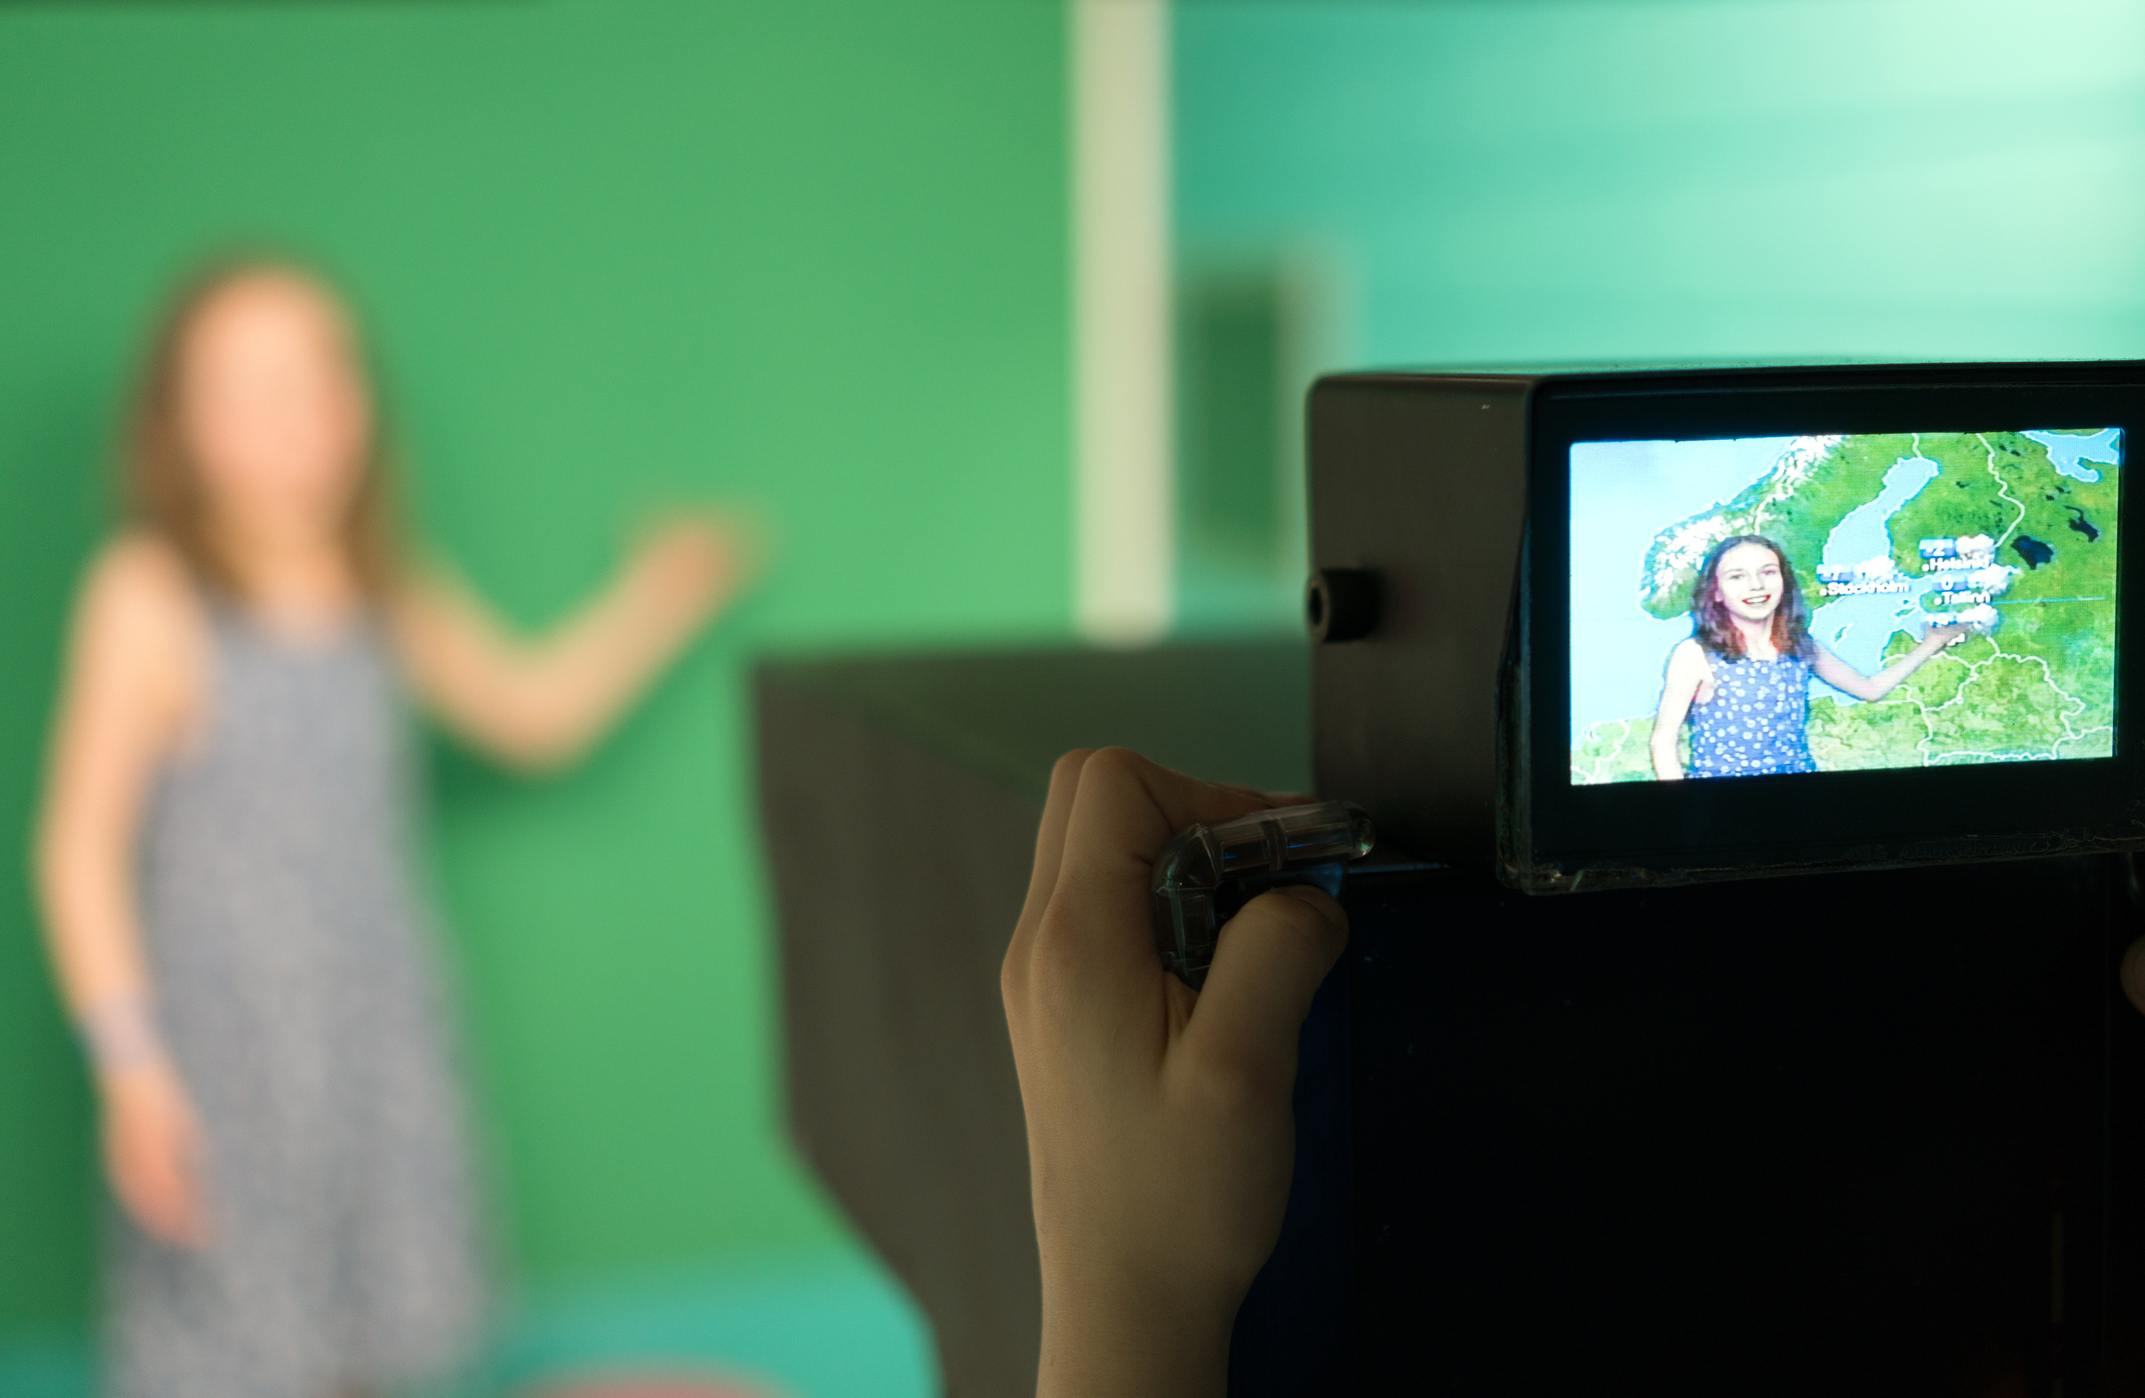 Weather forecast. Little girl standing in front of camera on green screen.